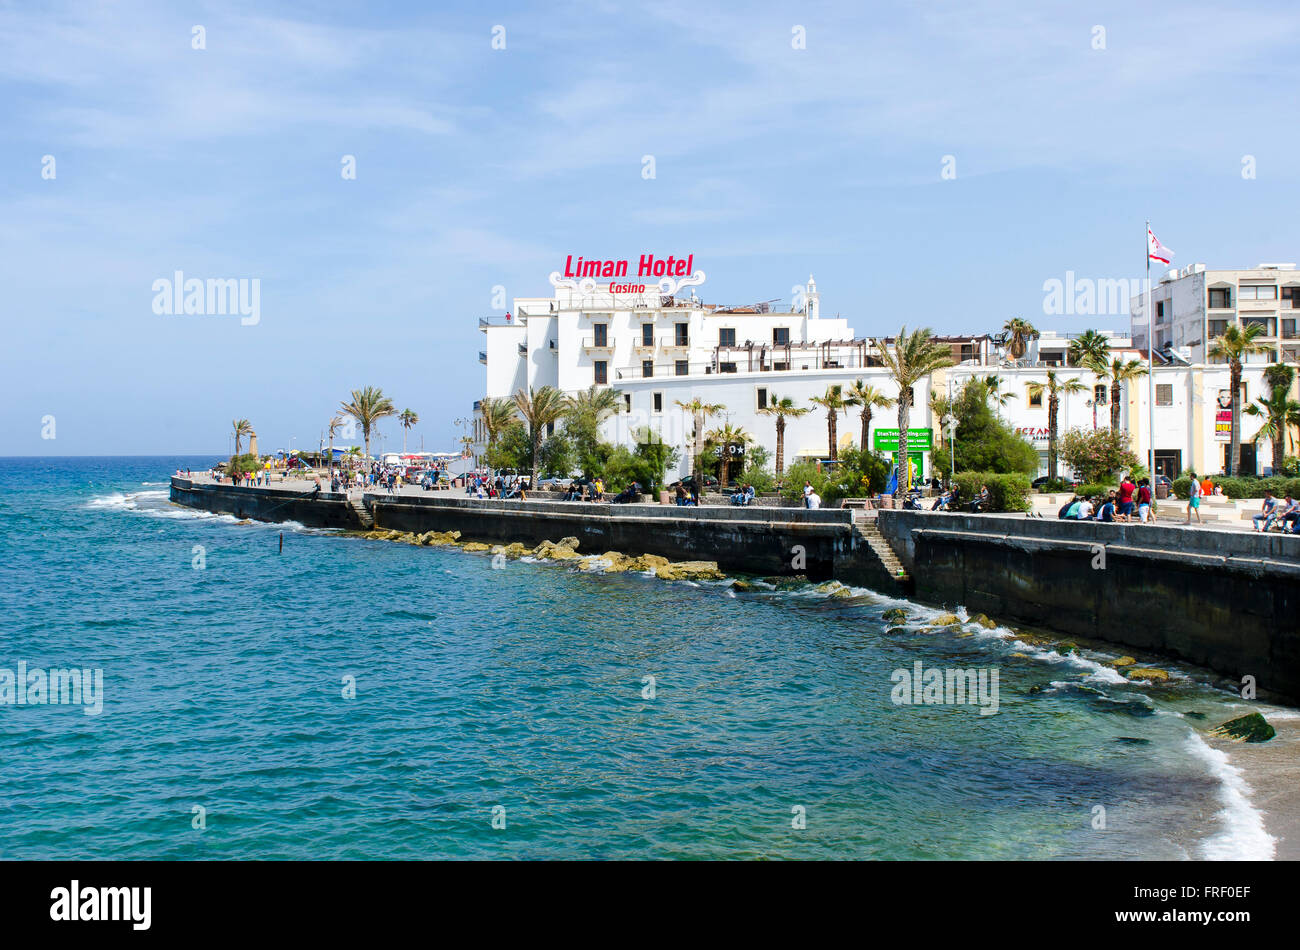 liman hotel and casino girne